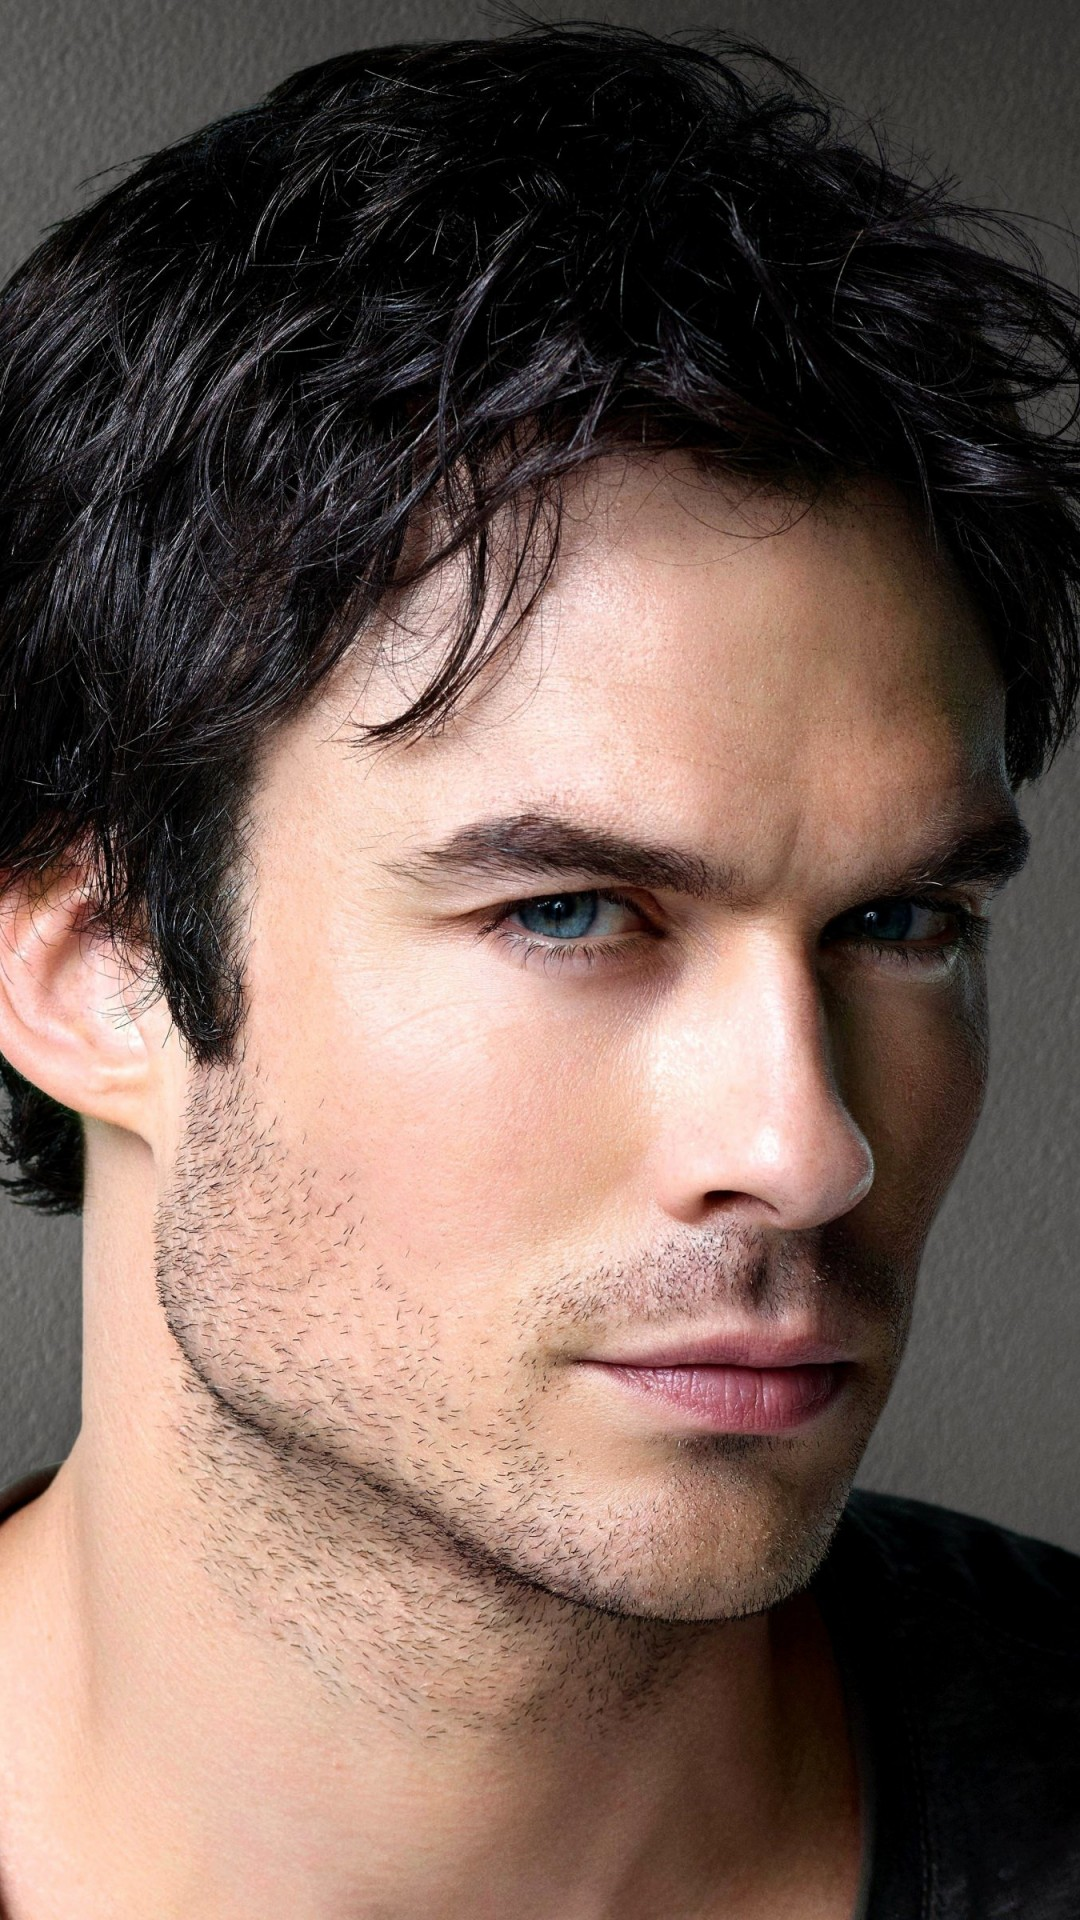 Ian Somerhalder Wallpaper for Google Nexus 5